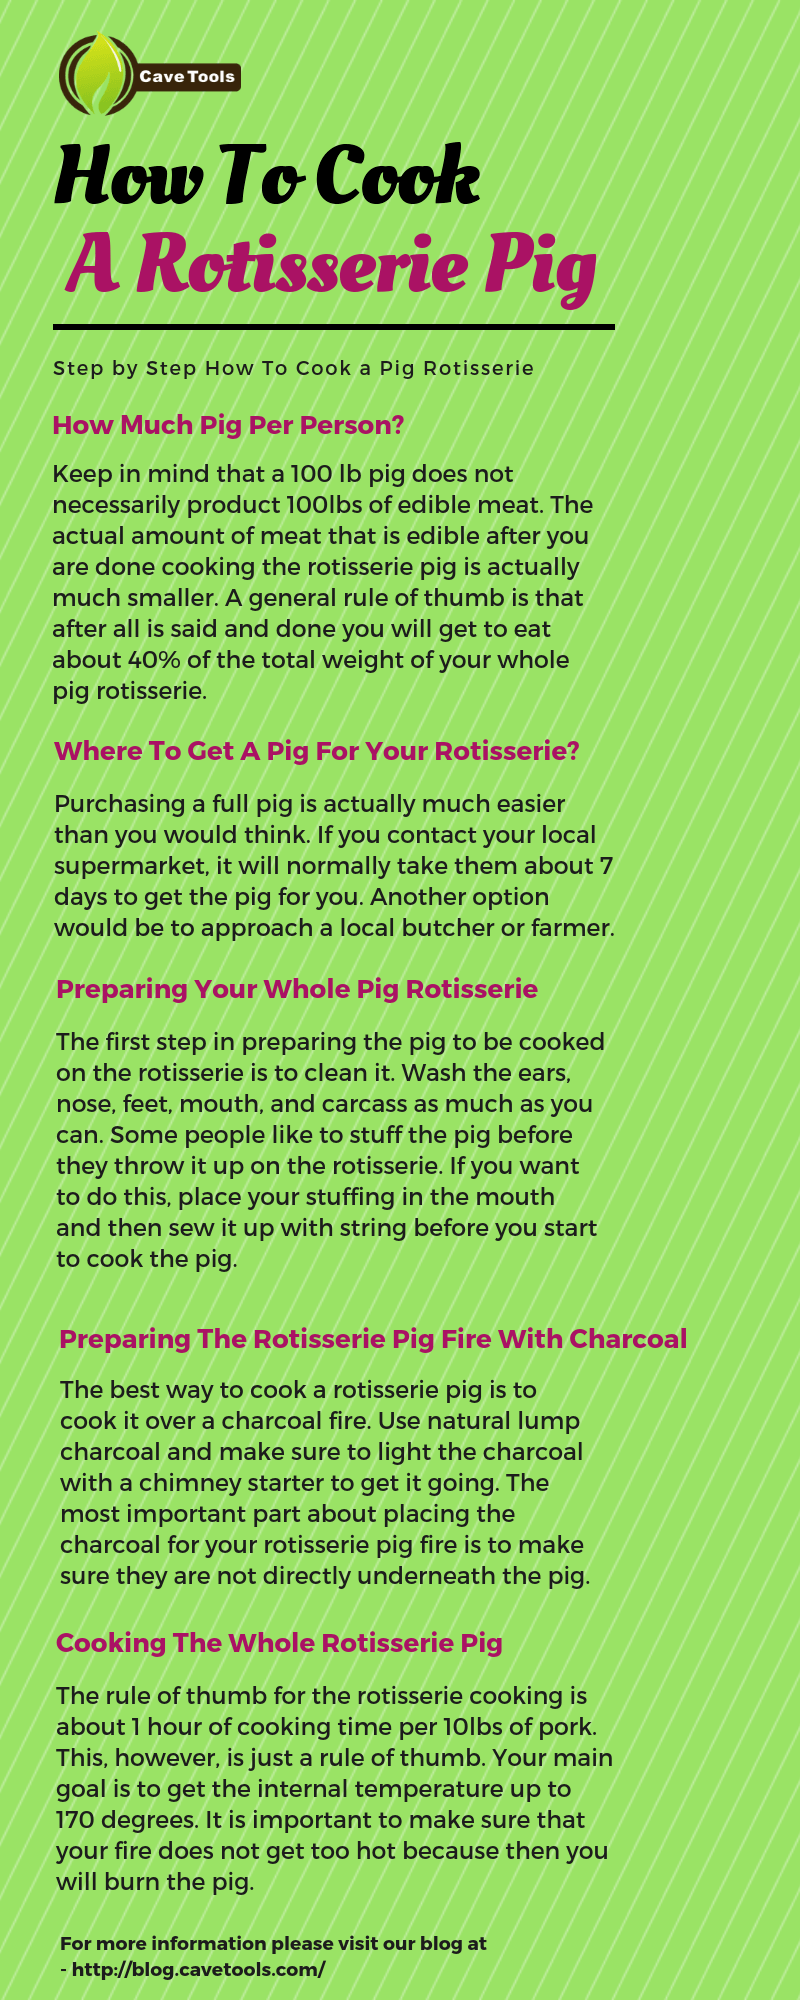 How To Cook A Rotisserie Pig